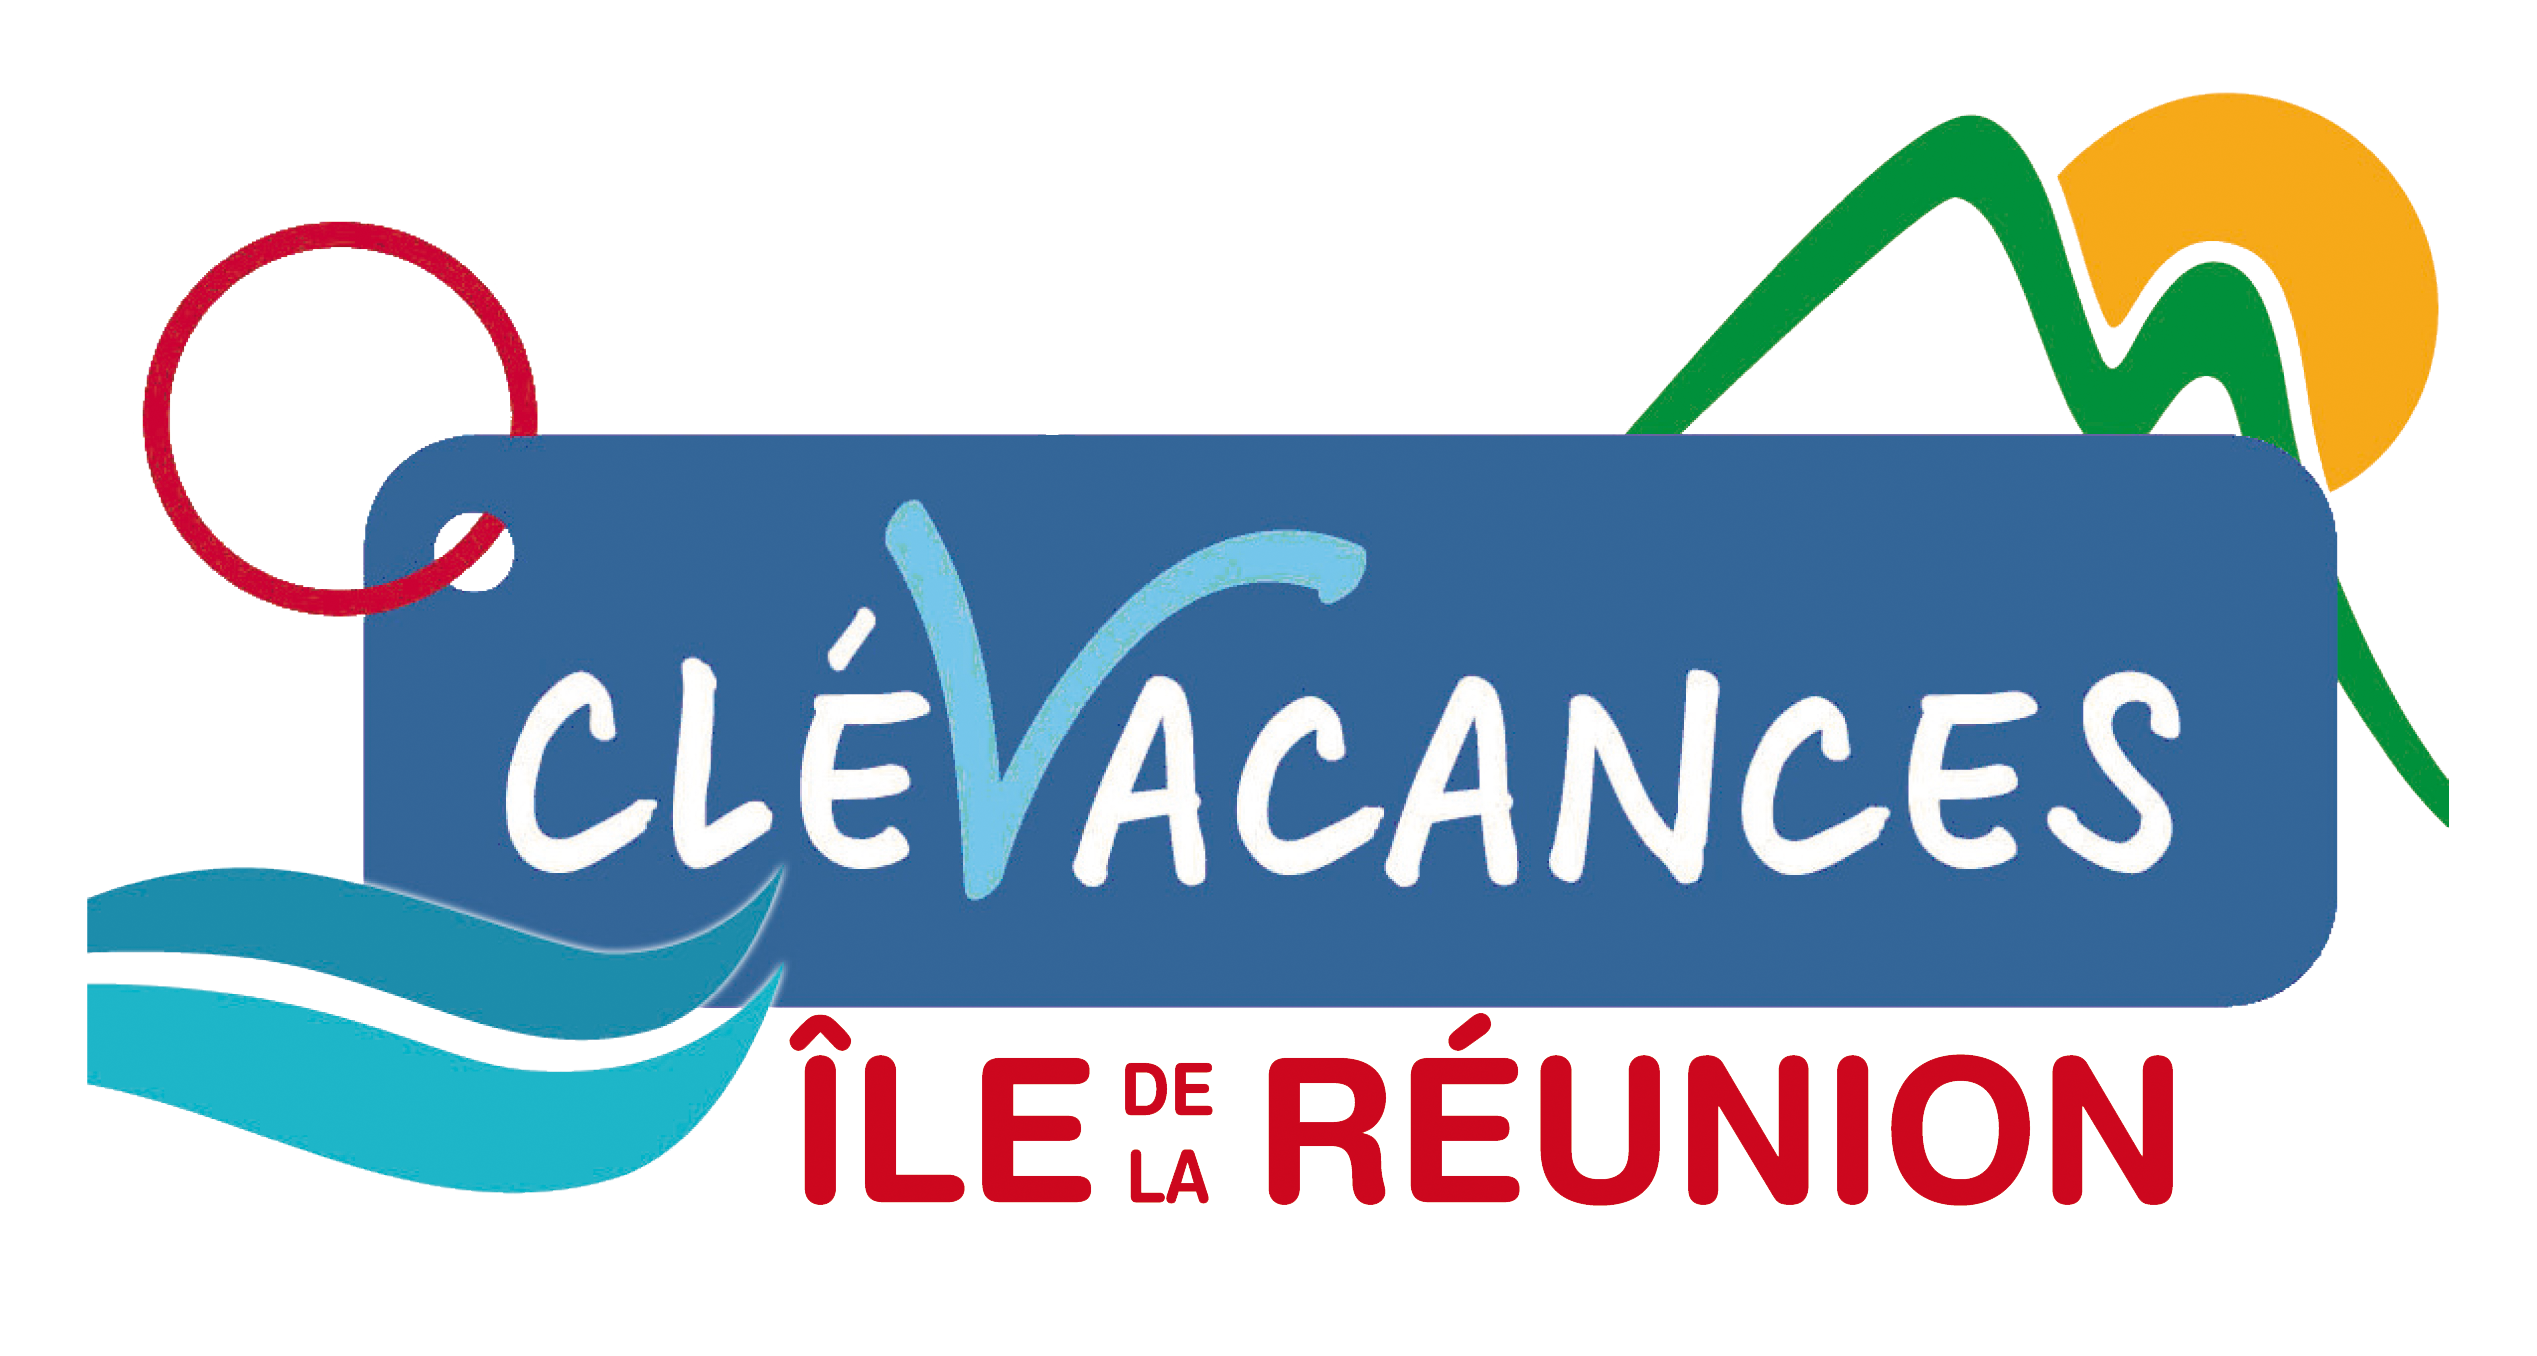 logo-clevacances-reunion